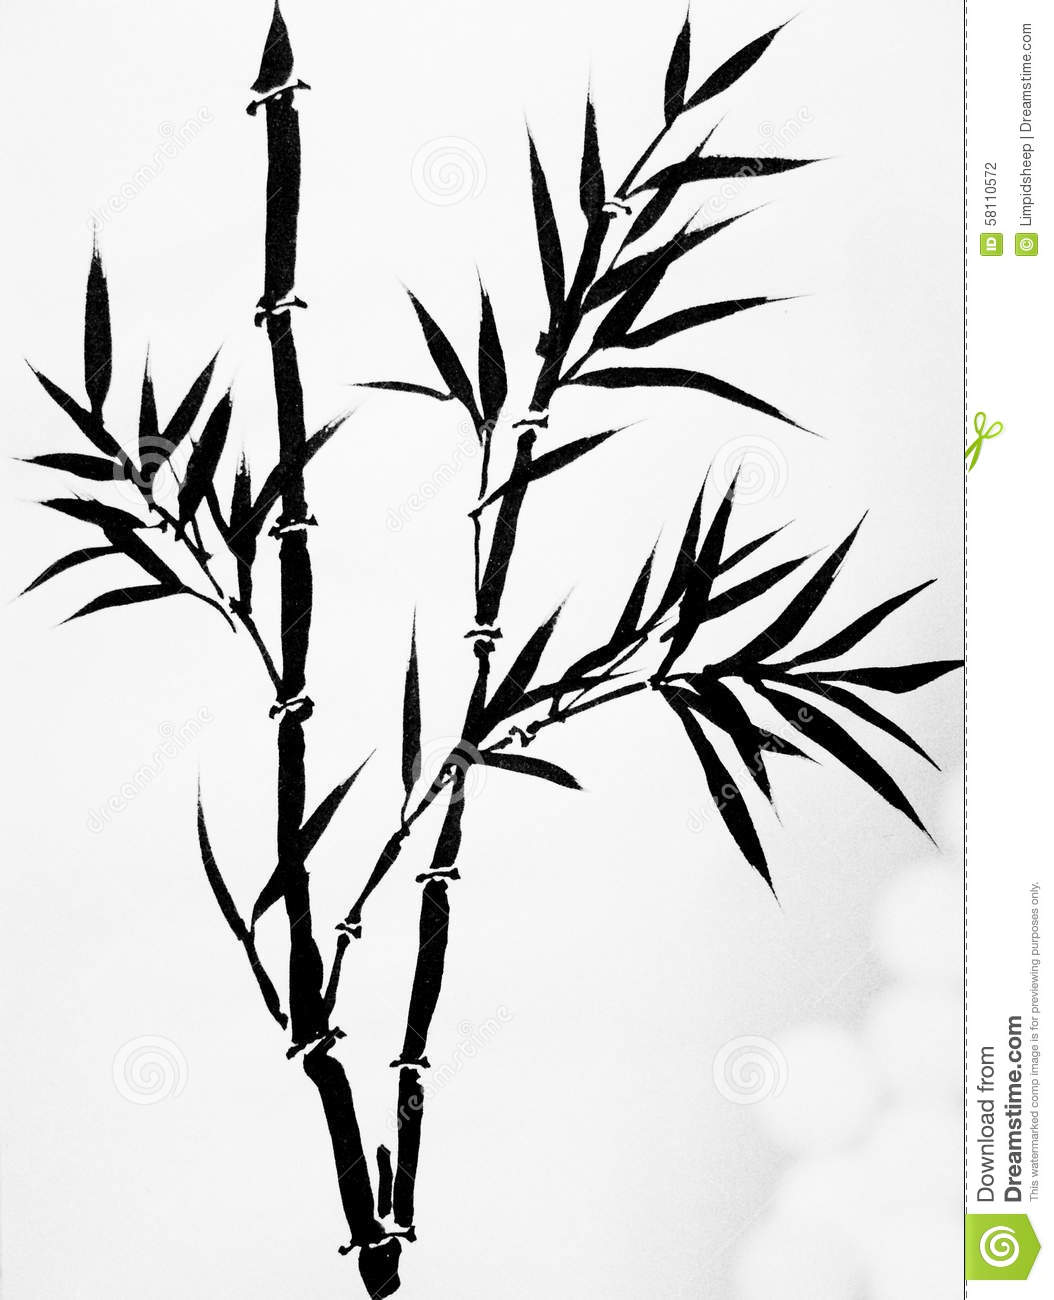 Black And White Leaf Wallpaper Chinese Art Ink Painting Stock Illustration Image 58110572